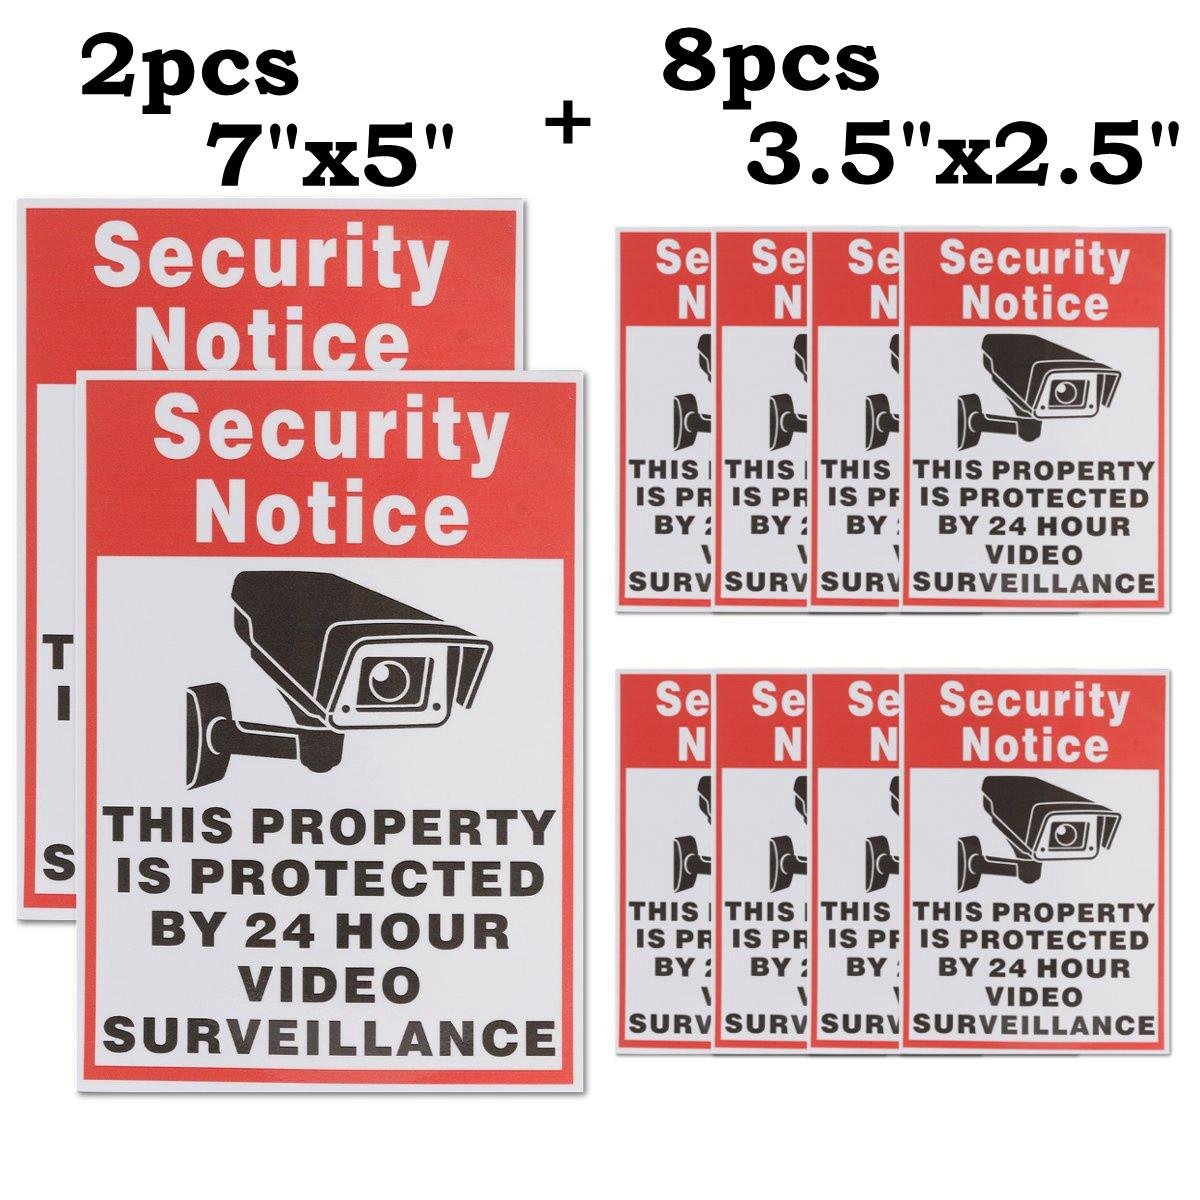 Safurance 10pcs/lot Waterproof Sunscreen PVC Home CCTV Video Surveillance Security Camera Alarm Sticker Warning Decal Signs набор посуды нержавейка taller мэриден tr 7160 4шт 2 2 2 7 3 7л